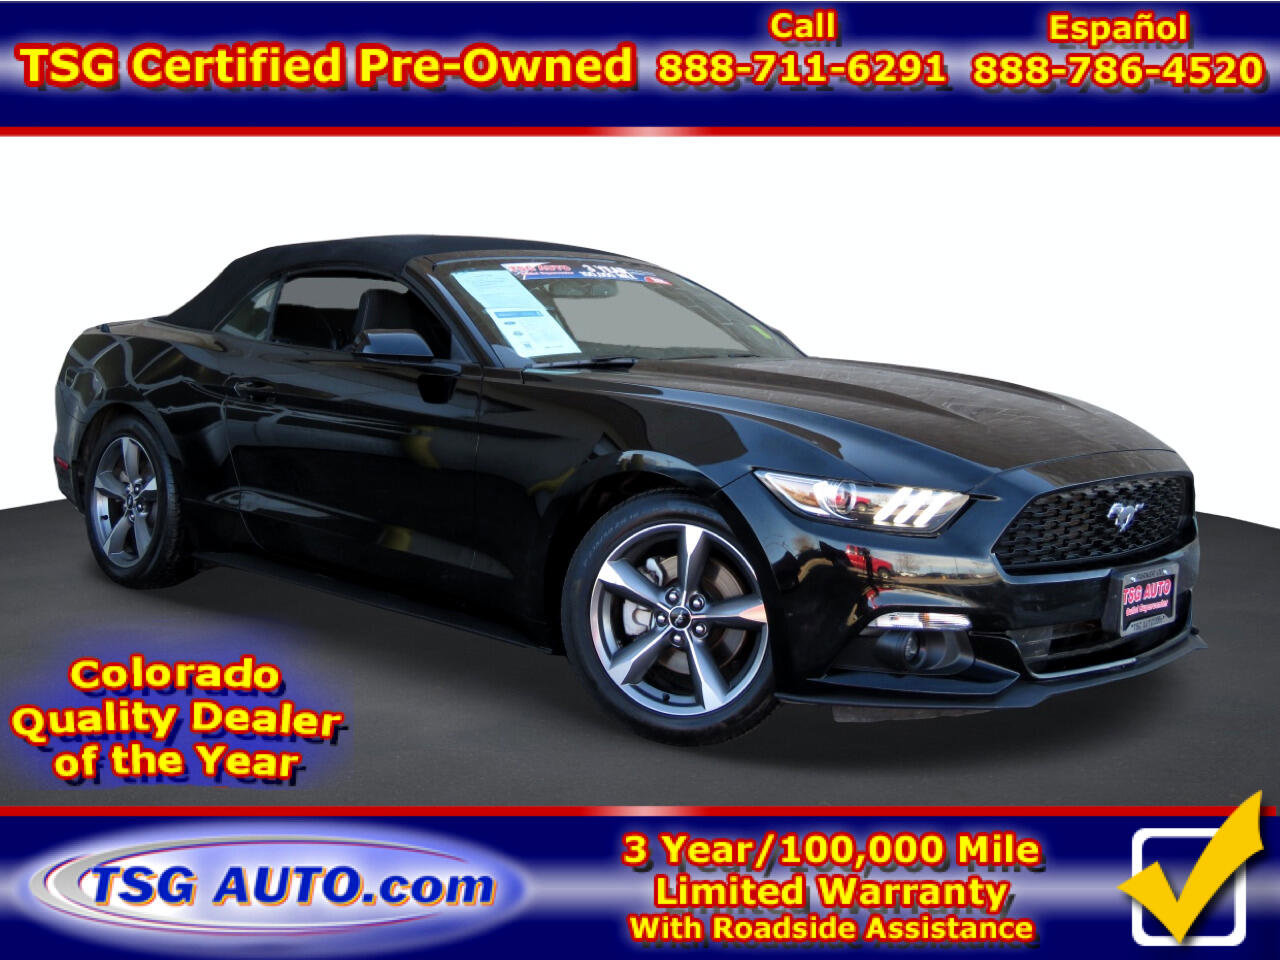 2016 Ford Mustang Convertible image